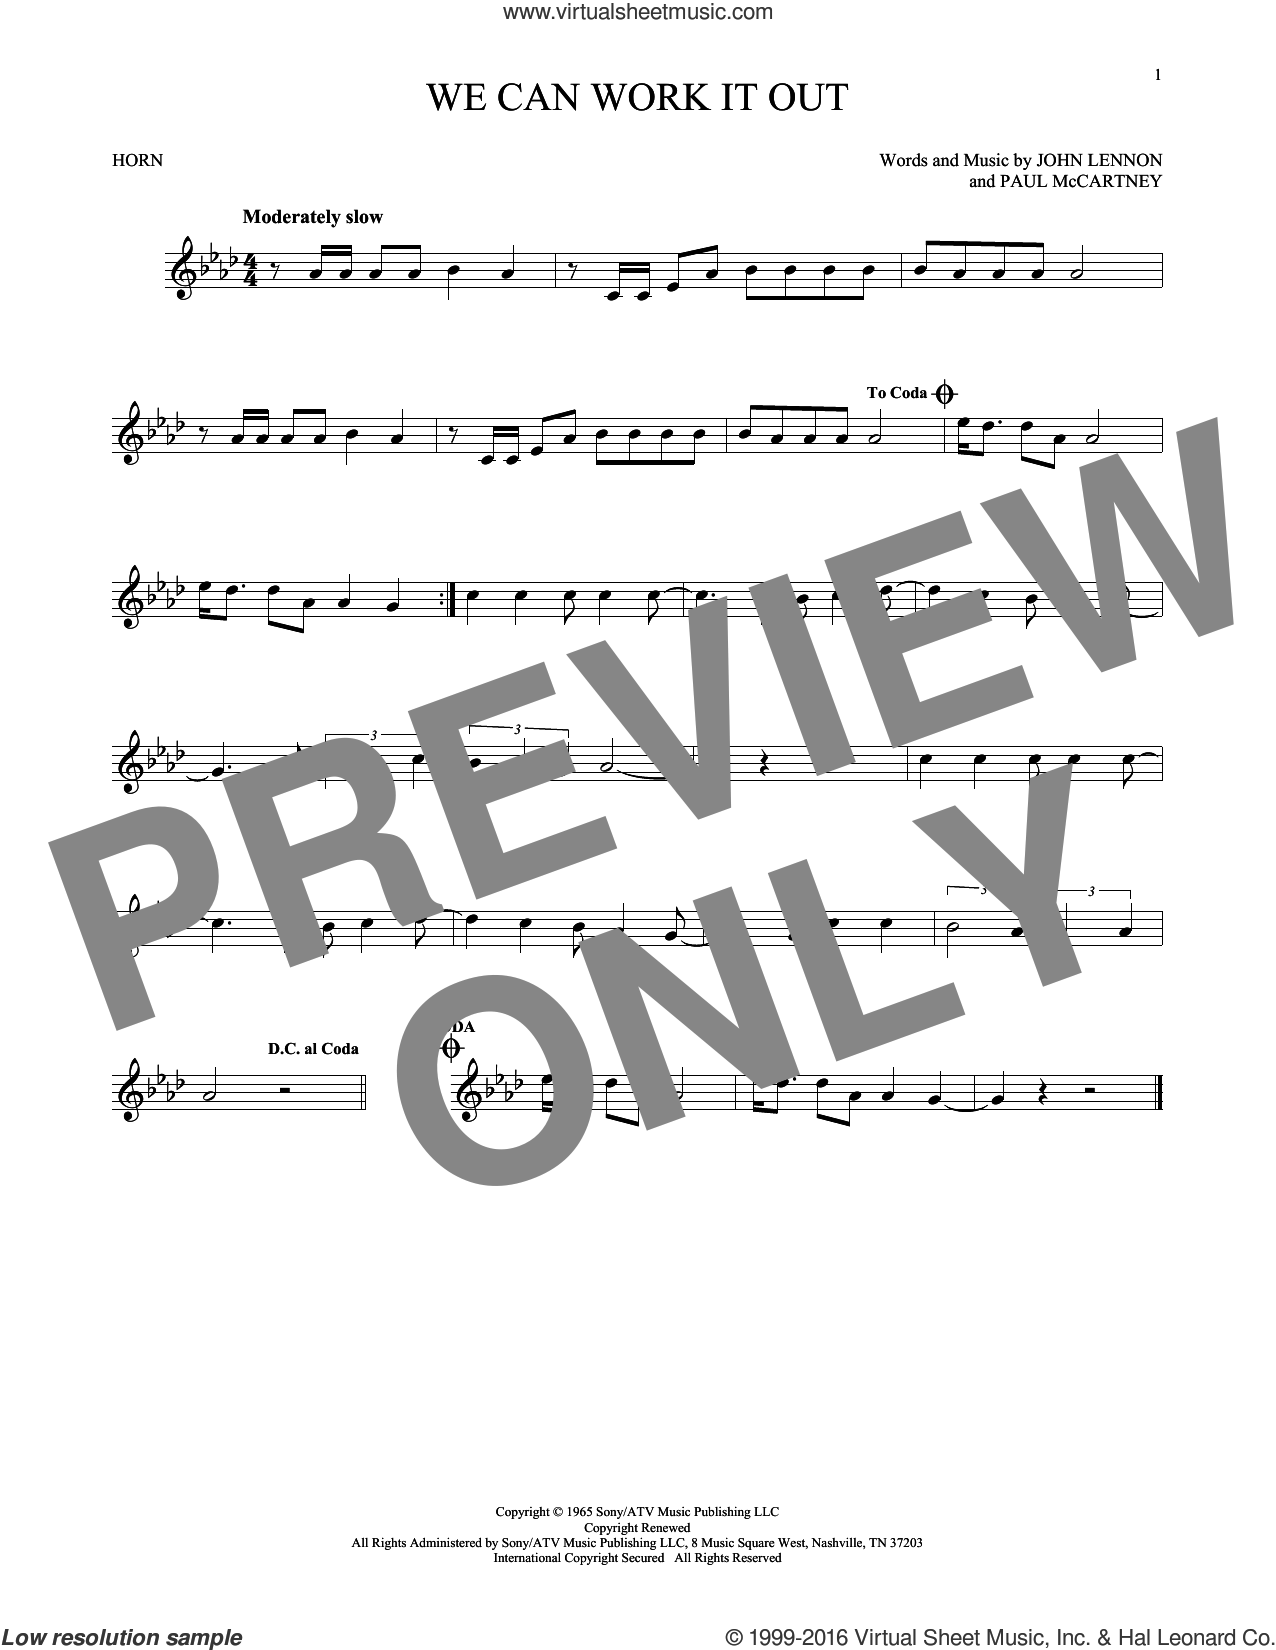 We Can Work It Out sheet music for horn solo by The Beatles, John Lennon and Paul McCartney. Score Image Preview.